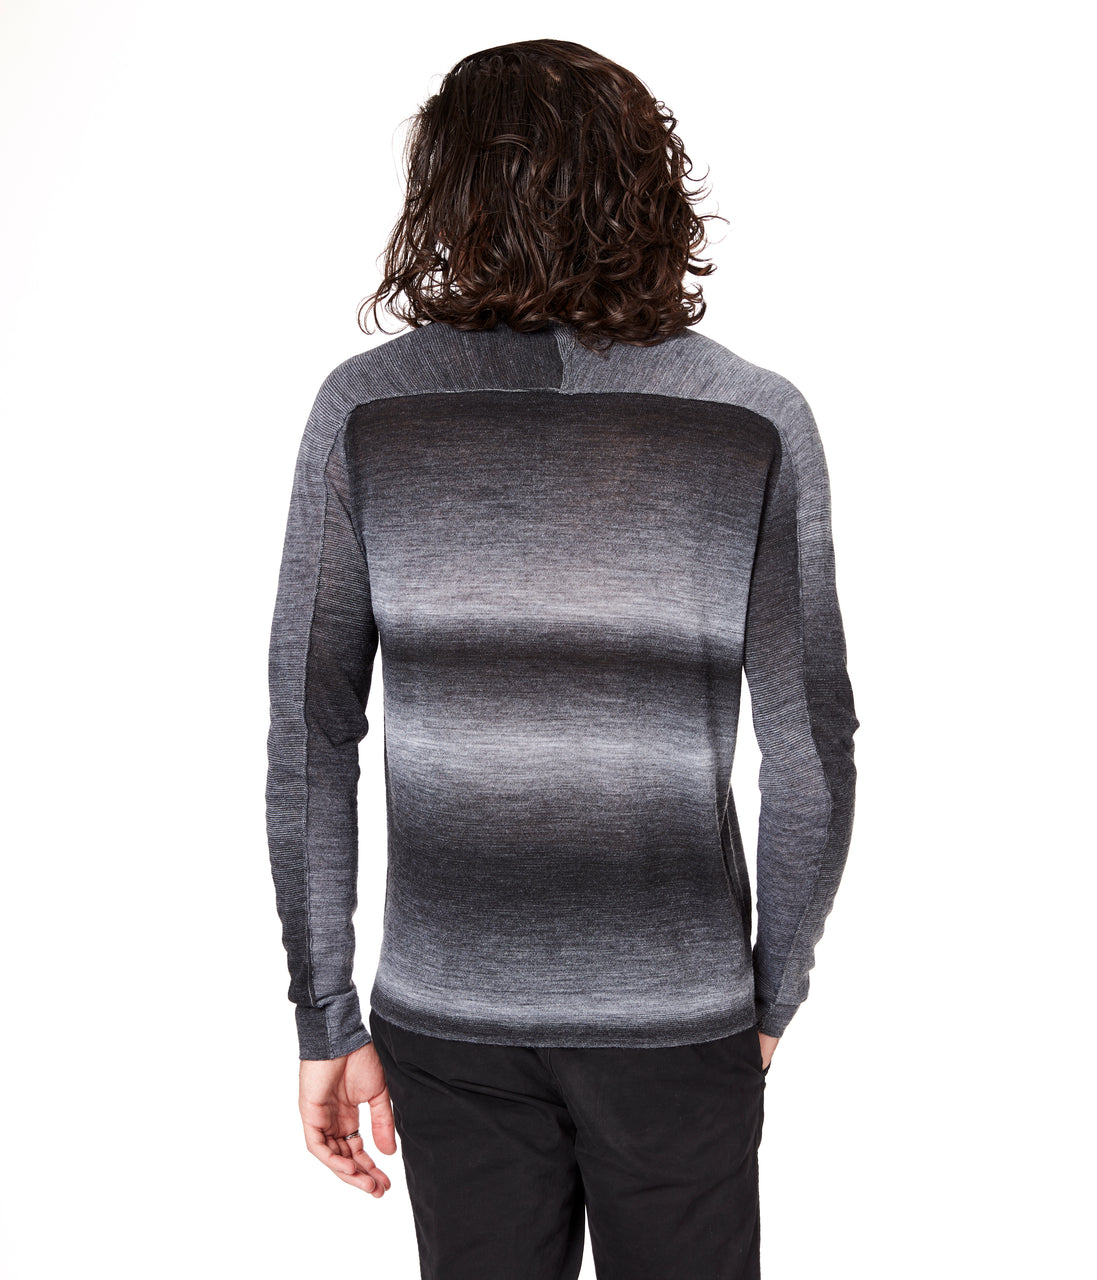 MVP V-Notch Spacedye Sweater - Black - Good Man Brand - MVP V-Notch Spacedye Sweater - Black